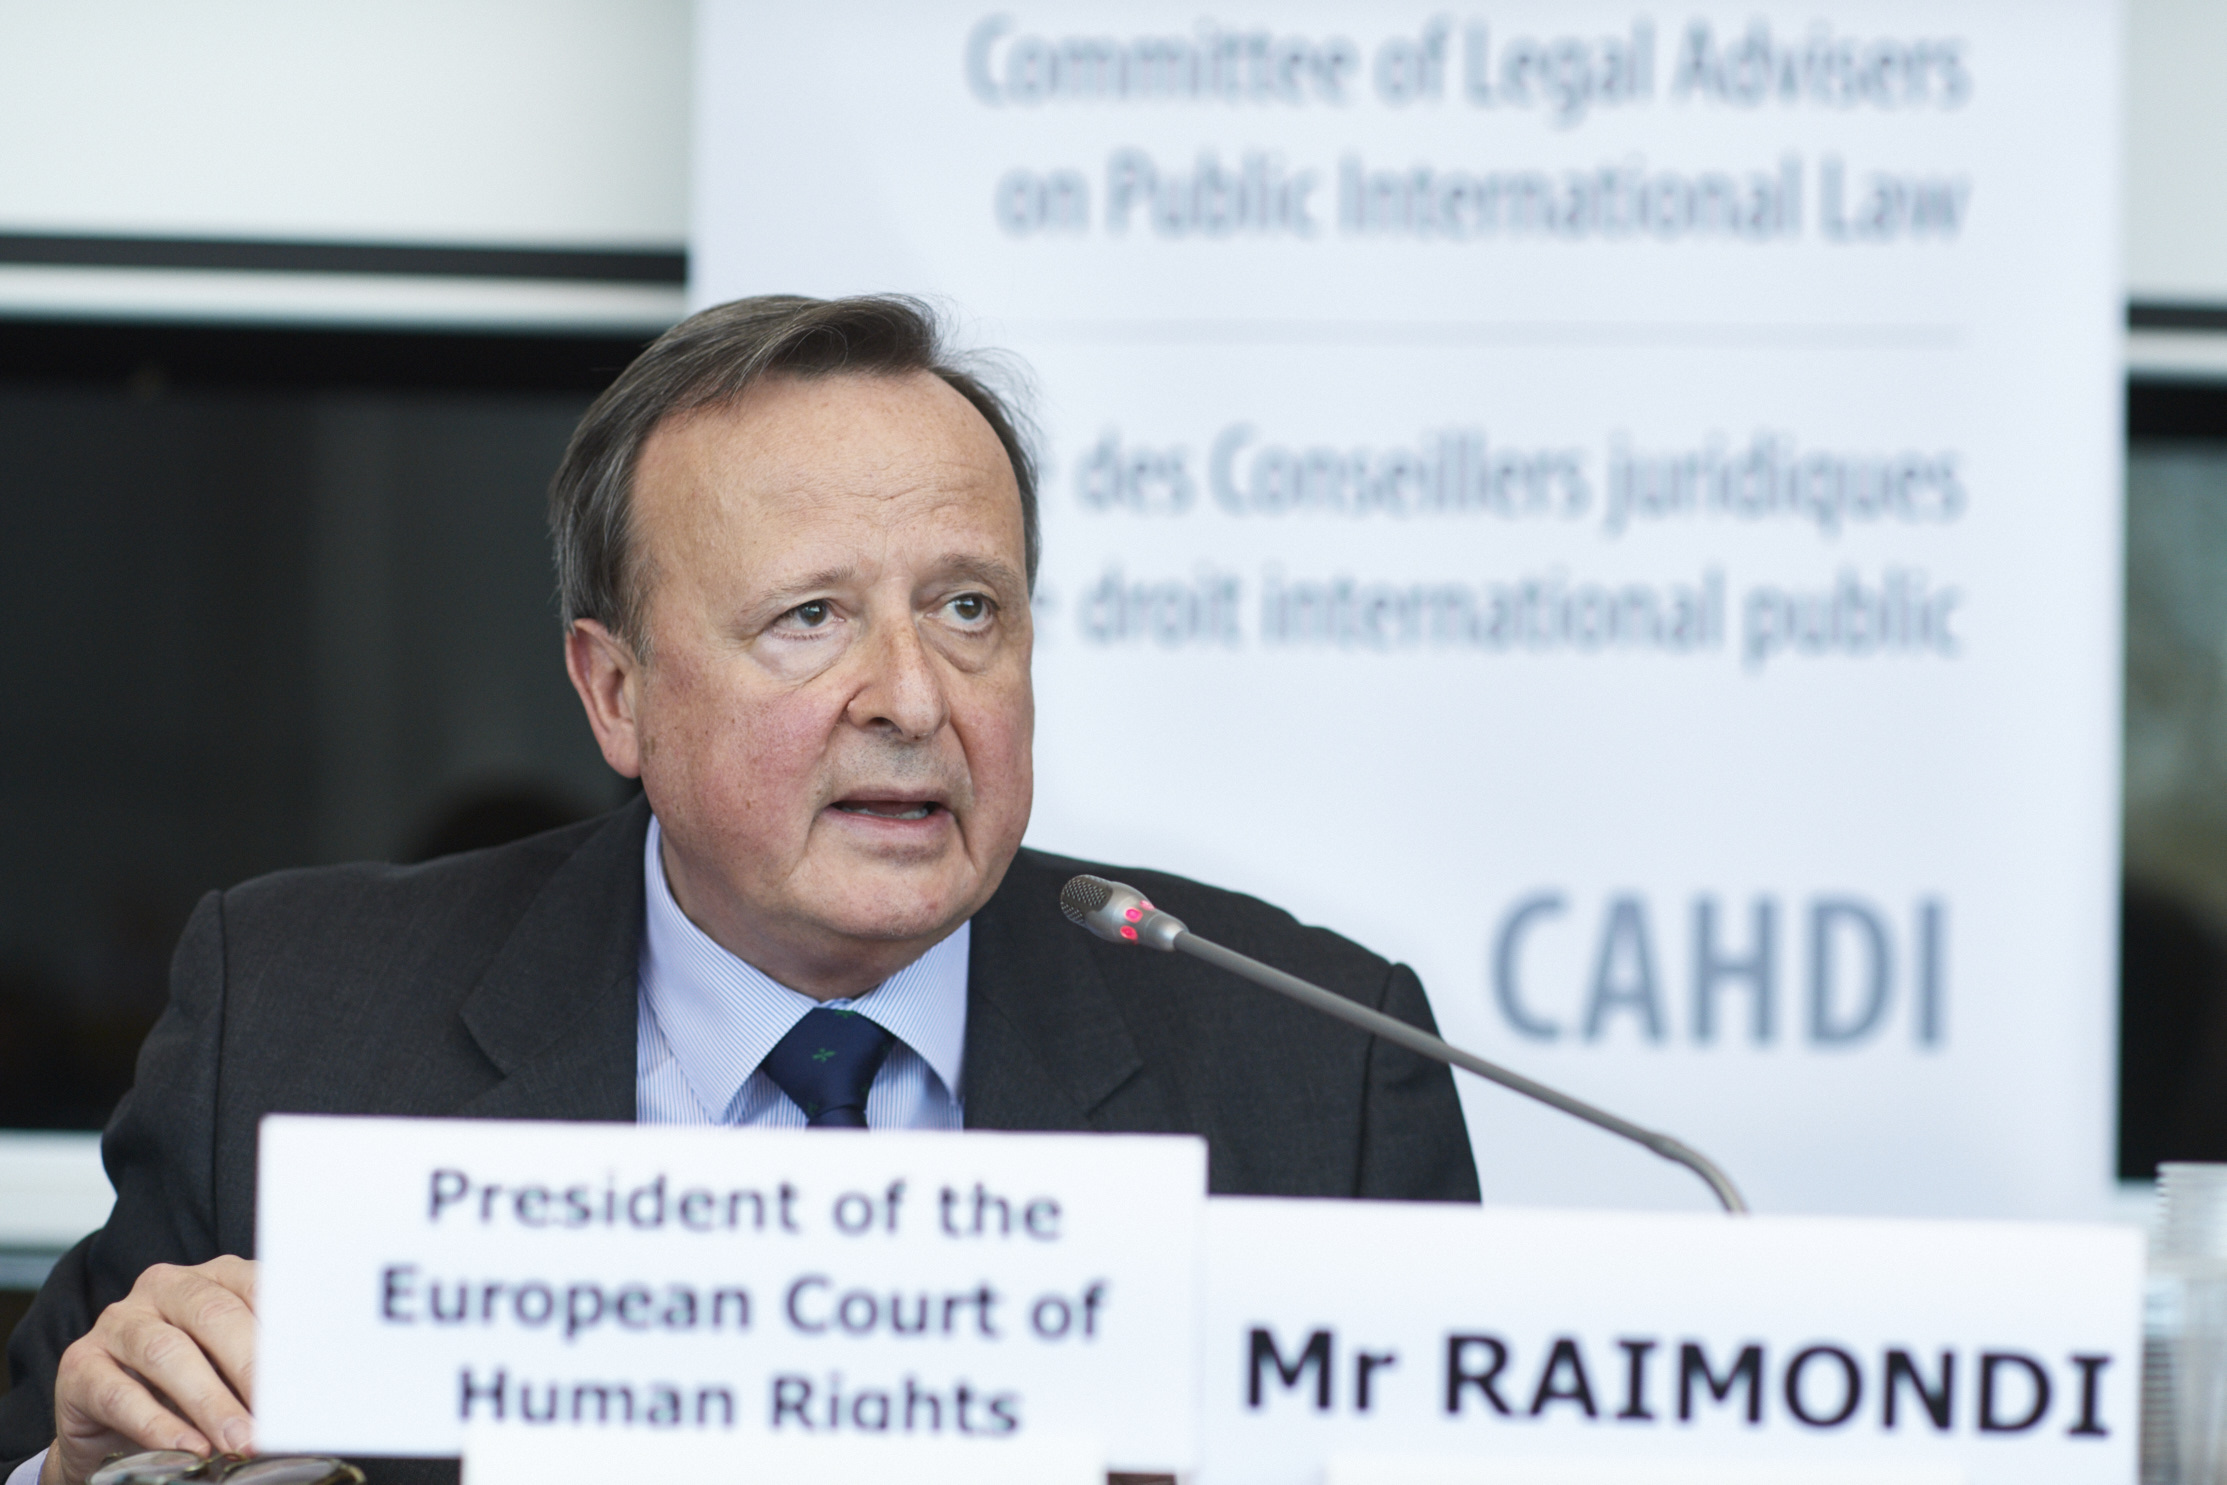 Presentation of Mr Guido Raimondi, President of the European Court of Human Rights, during the 53rd meeting of the CAHDI